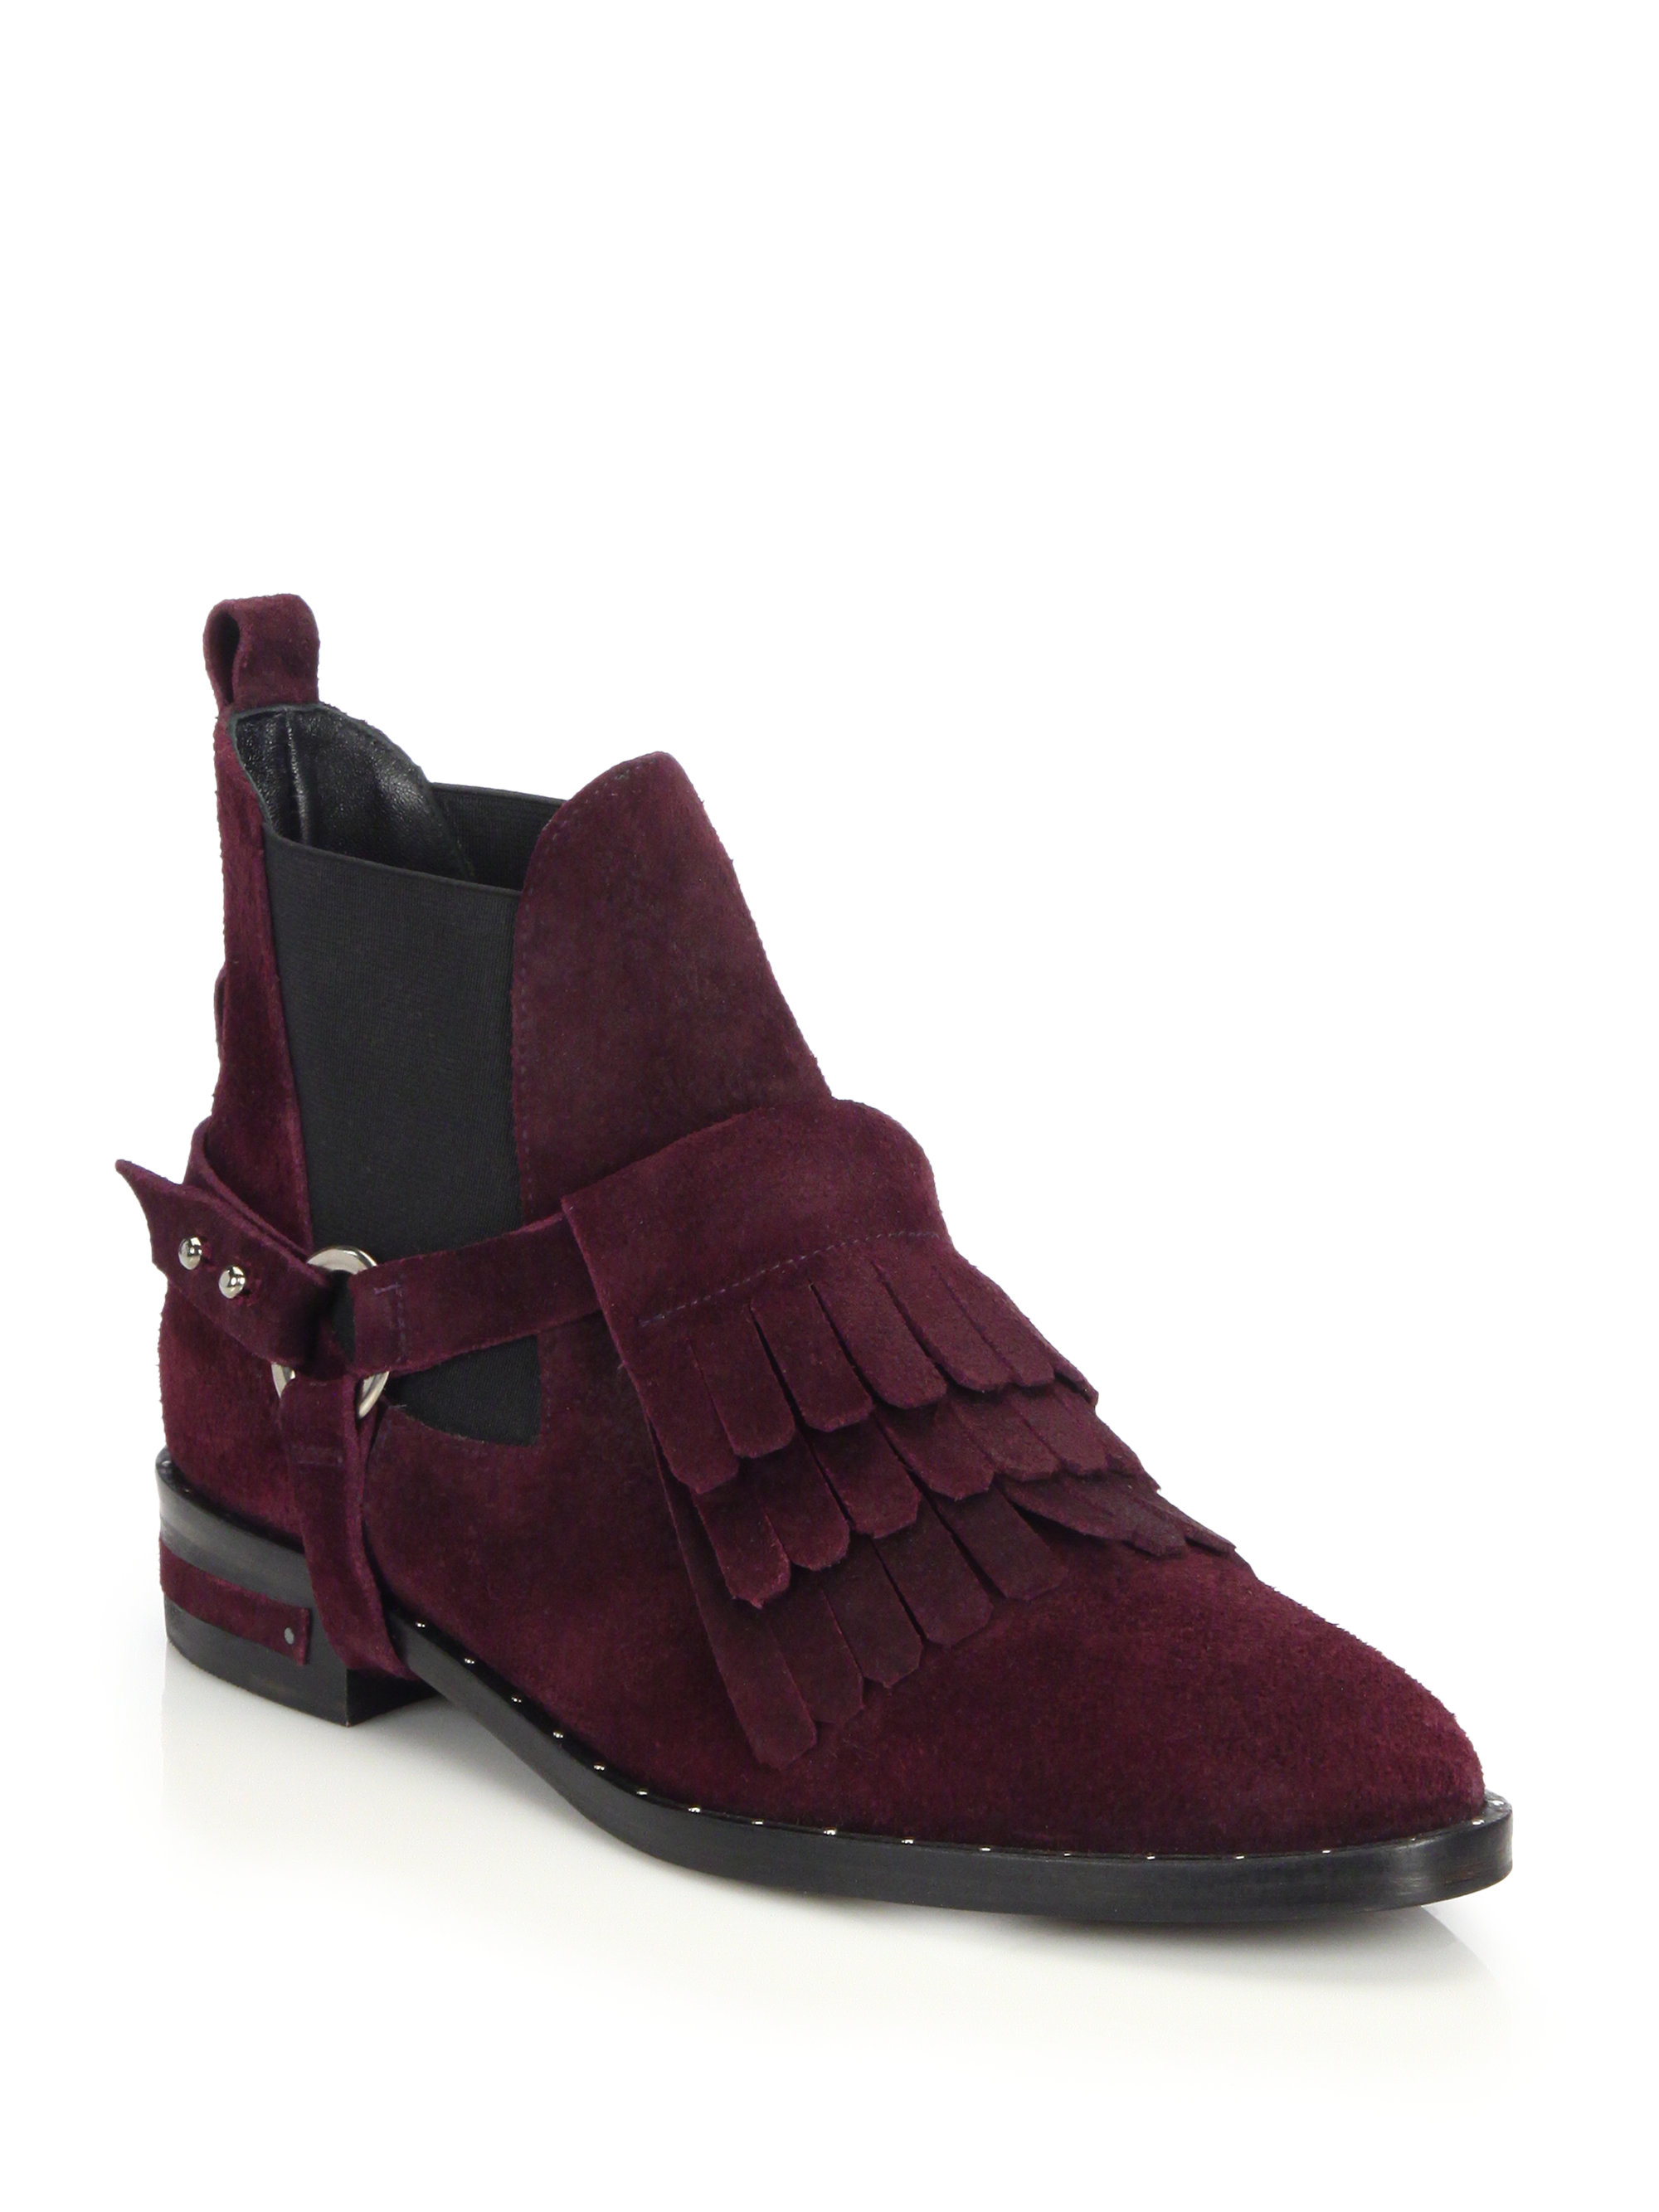 frēda salvador suede fringed harness ankle boots in purple